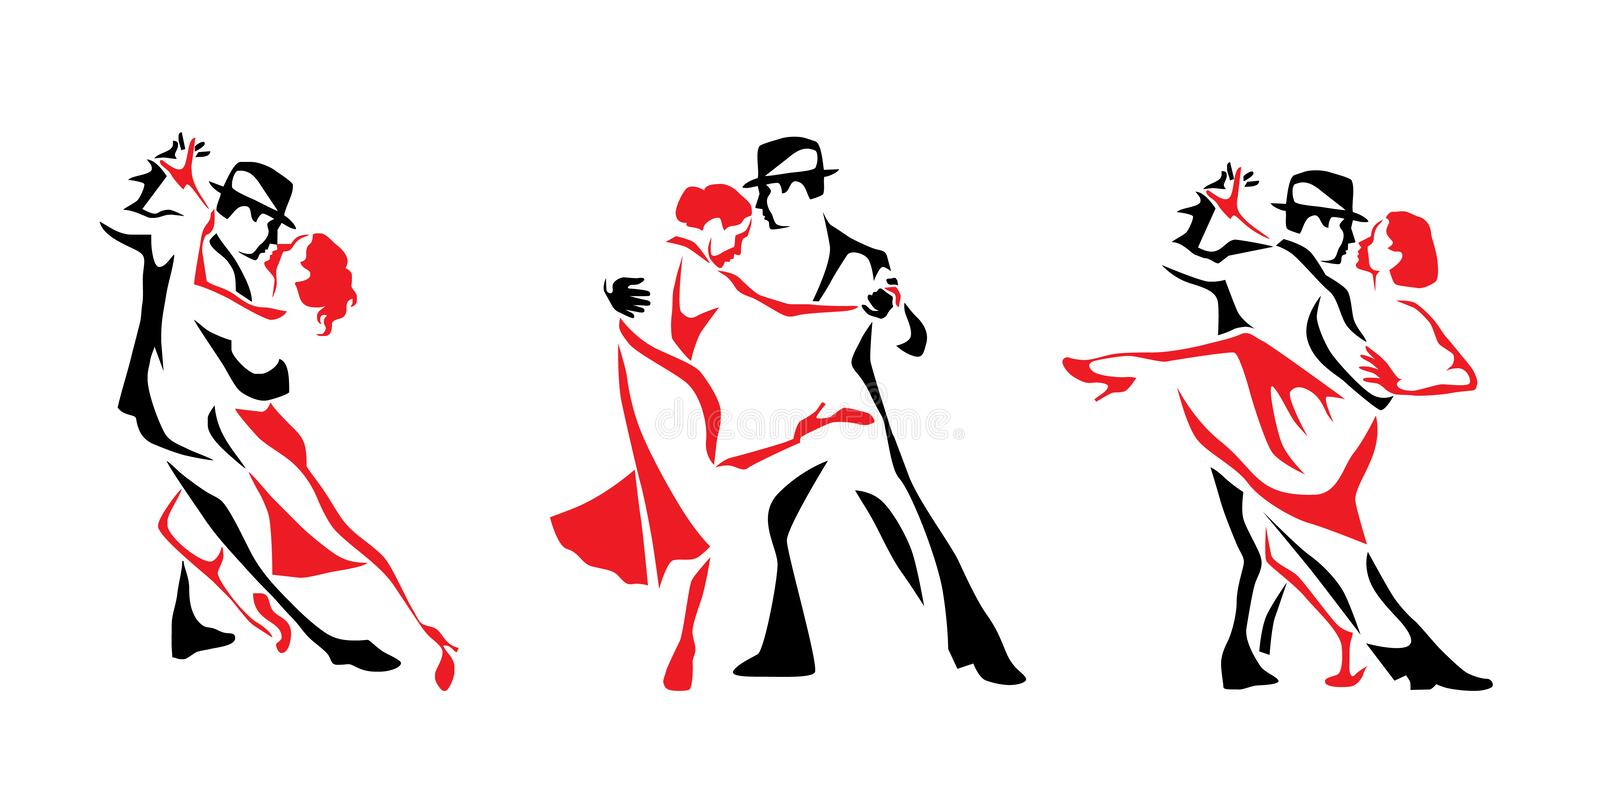 Tango dancing logo set. Couple man and woman vector illustration, logo, icon royalty free illustration